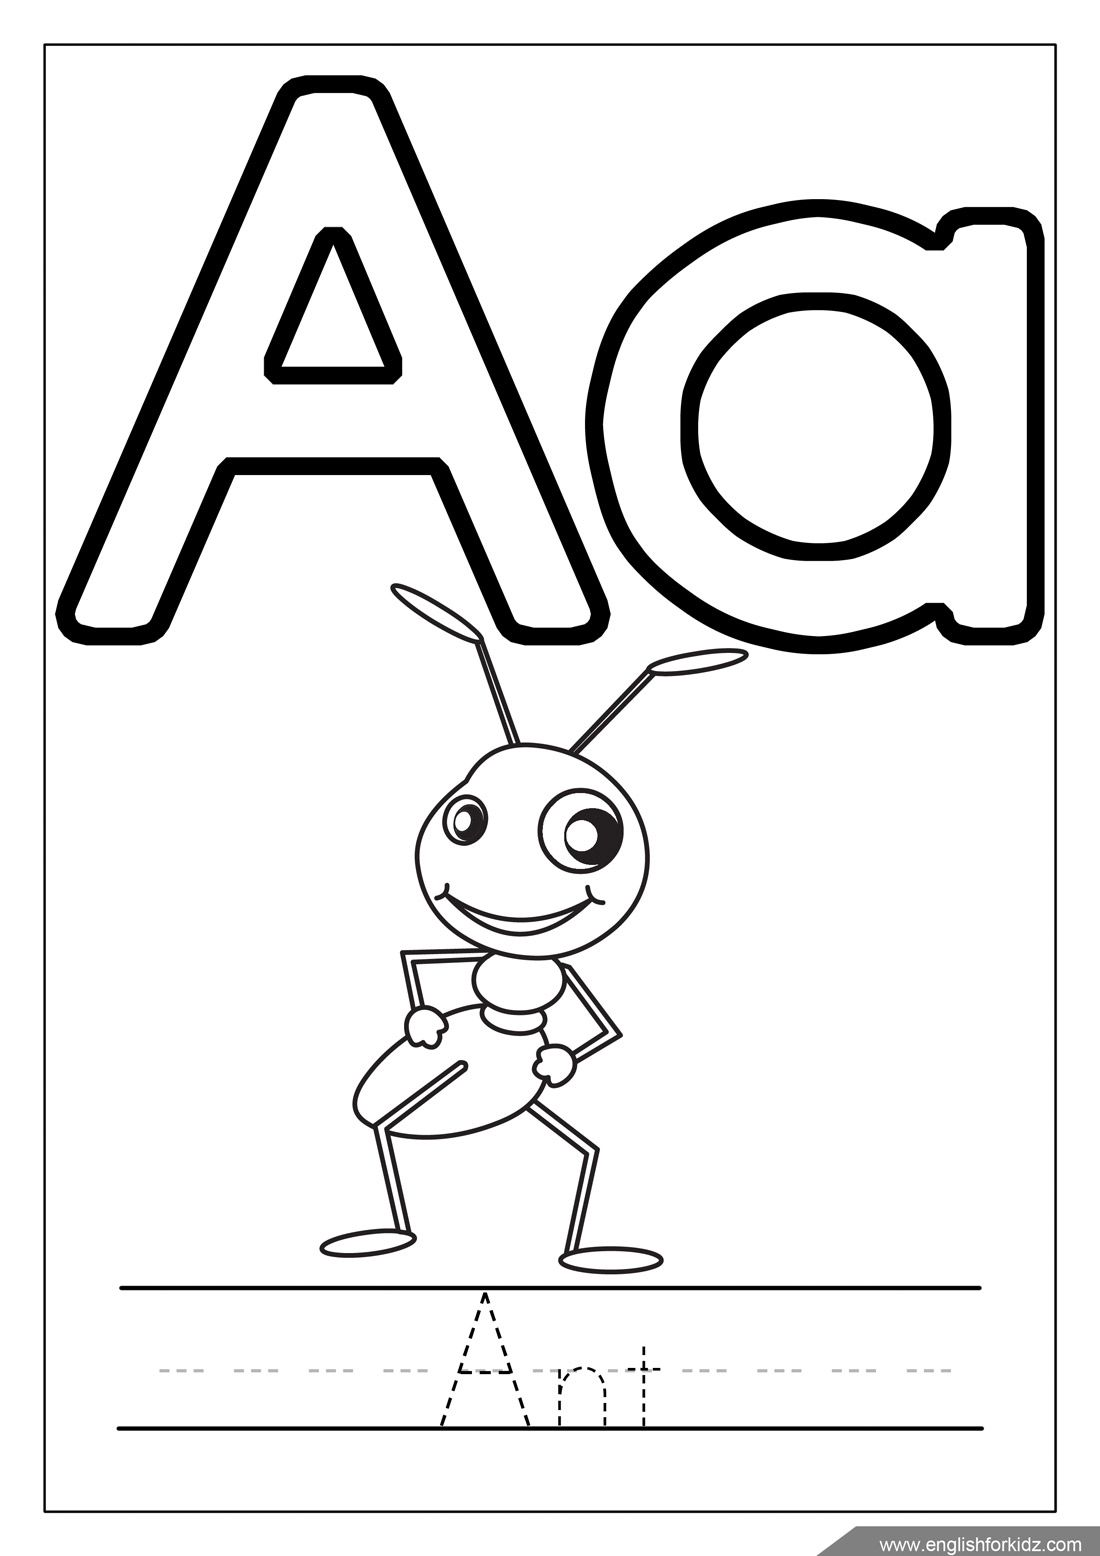 Englishforkidz.com Coloring pages, tracing practice, phonics ...